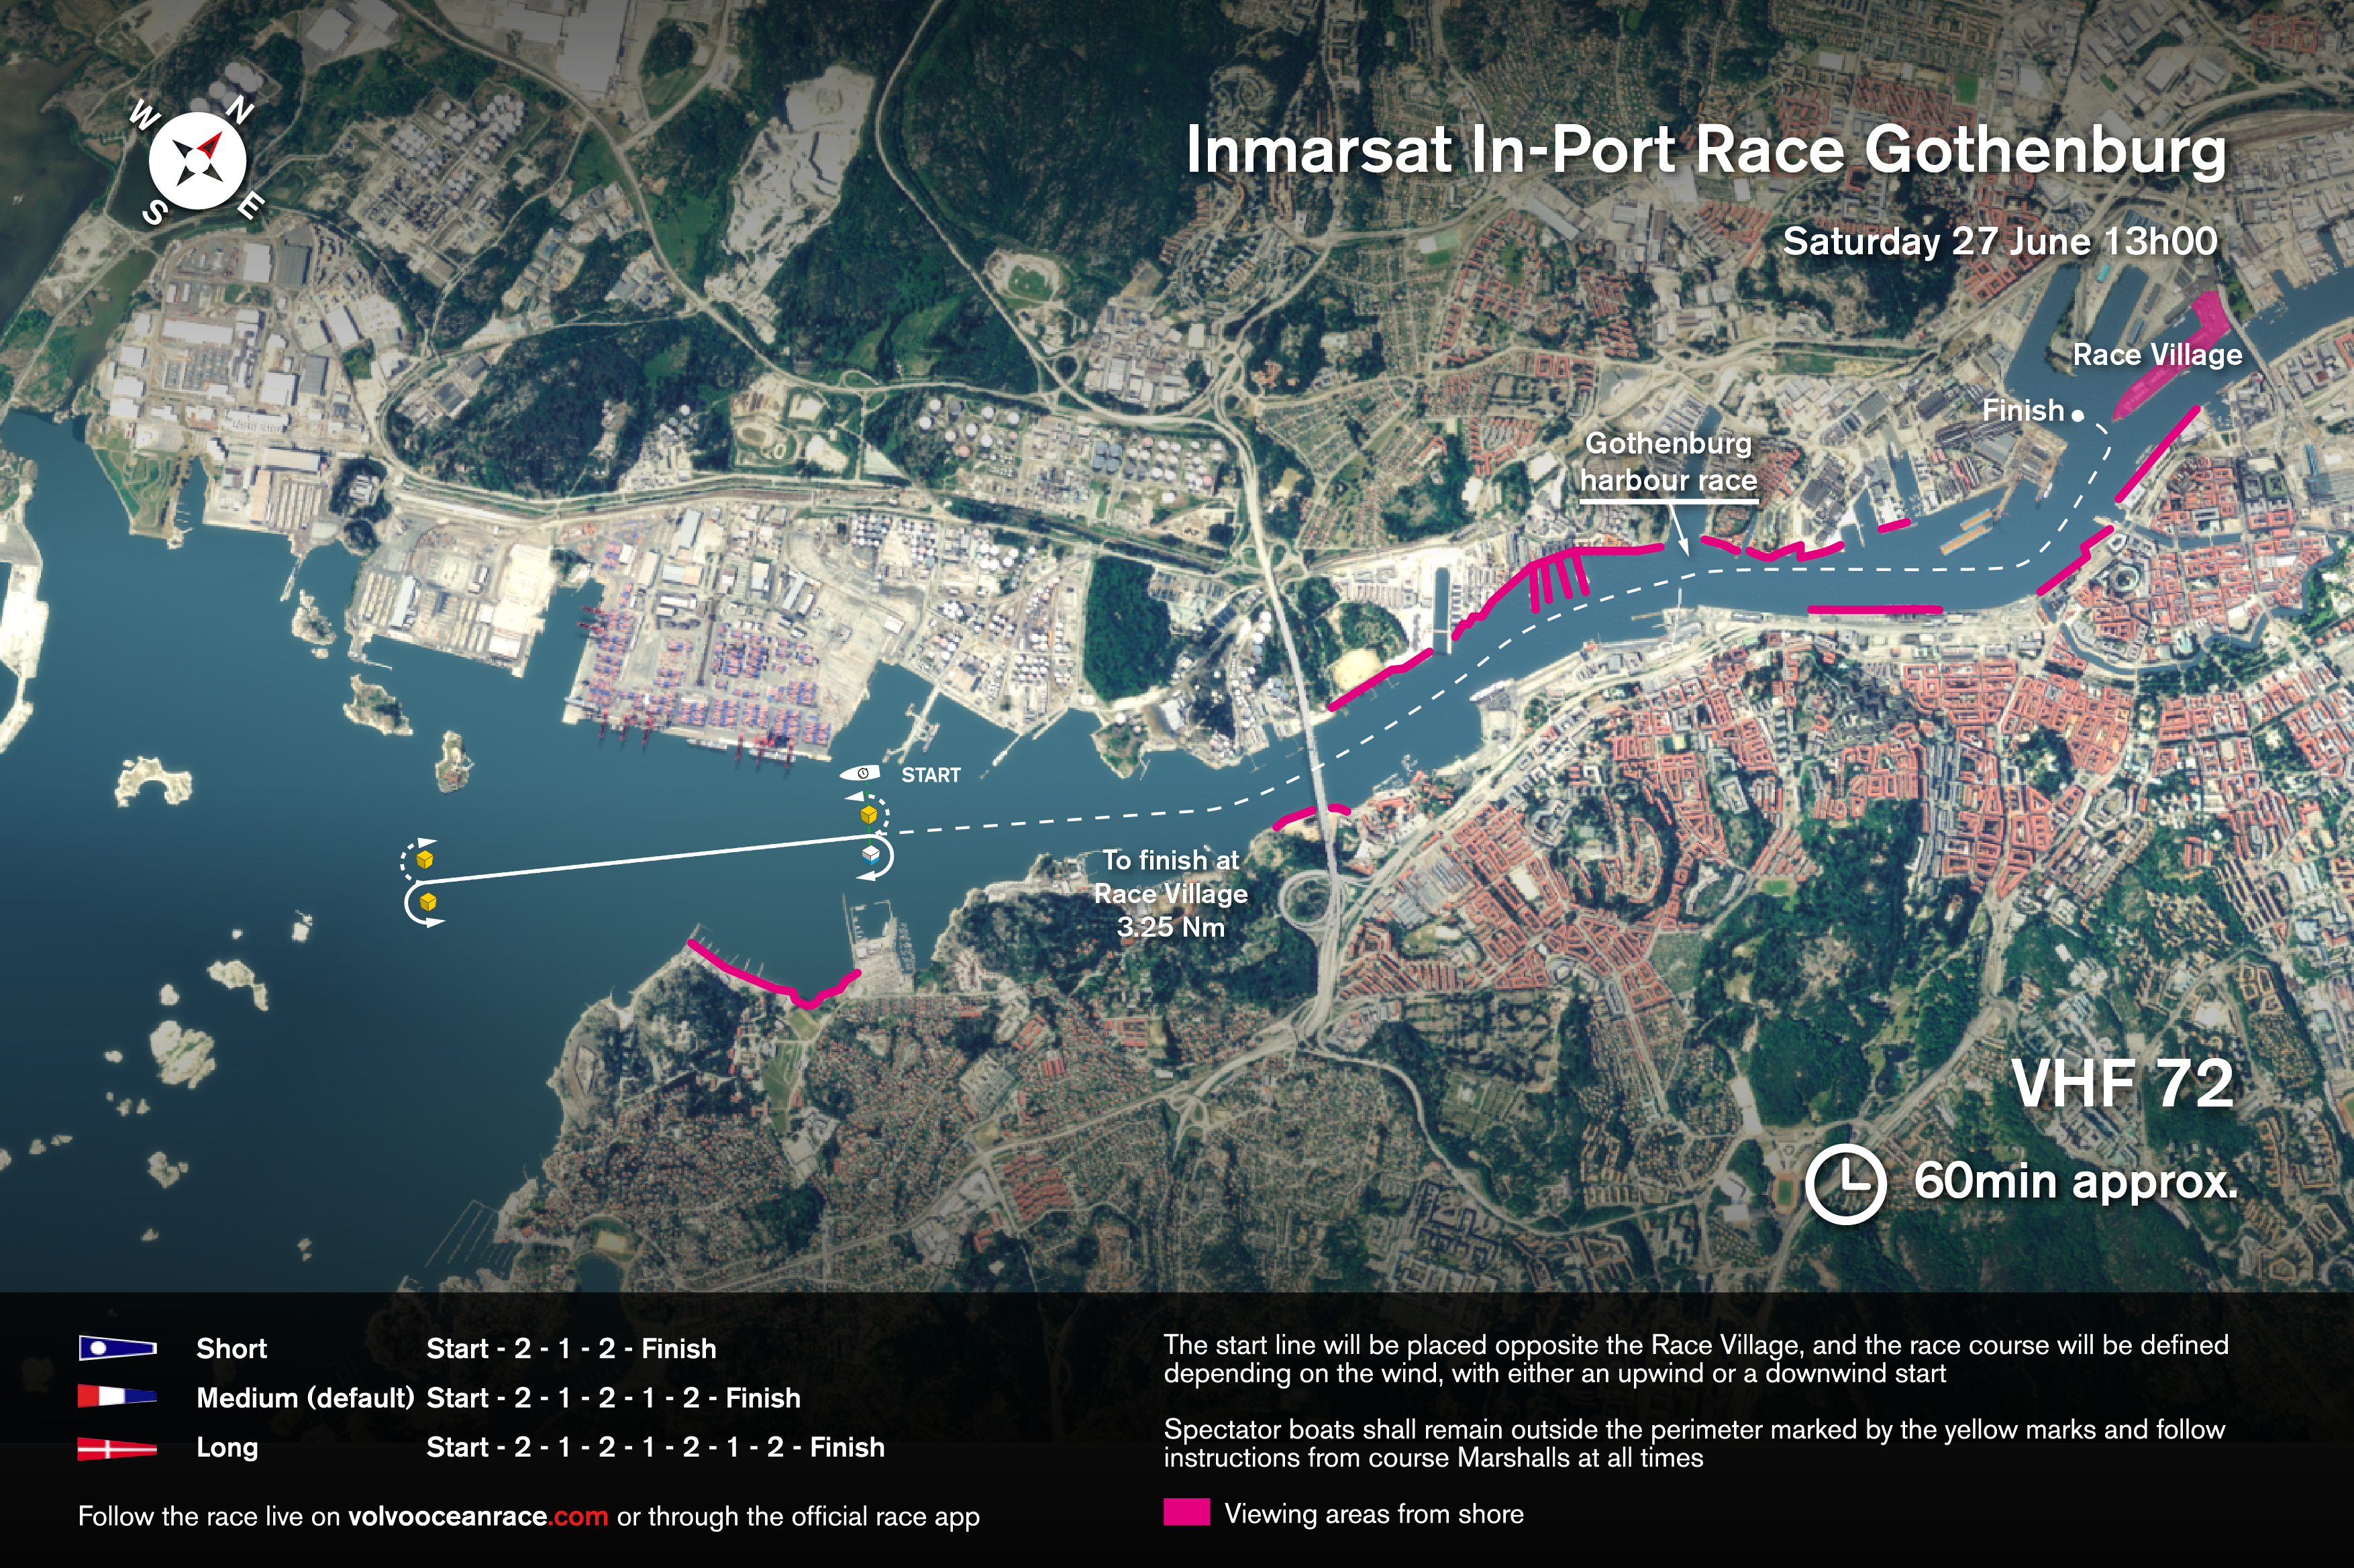 Gothenburg volvo ocean race download the map of the inmarsat in port race gothenburg jpg 66mb gumiabroncs Image collections